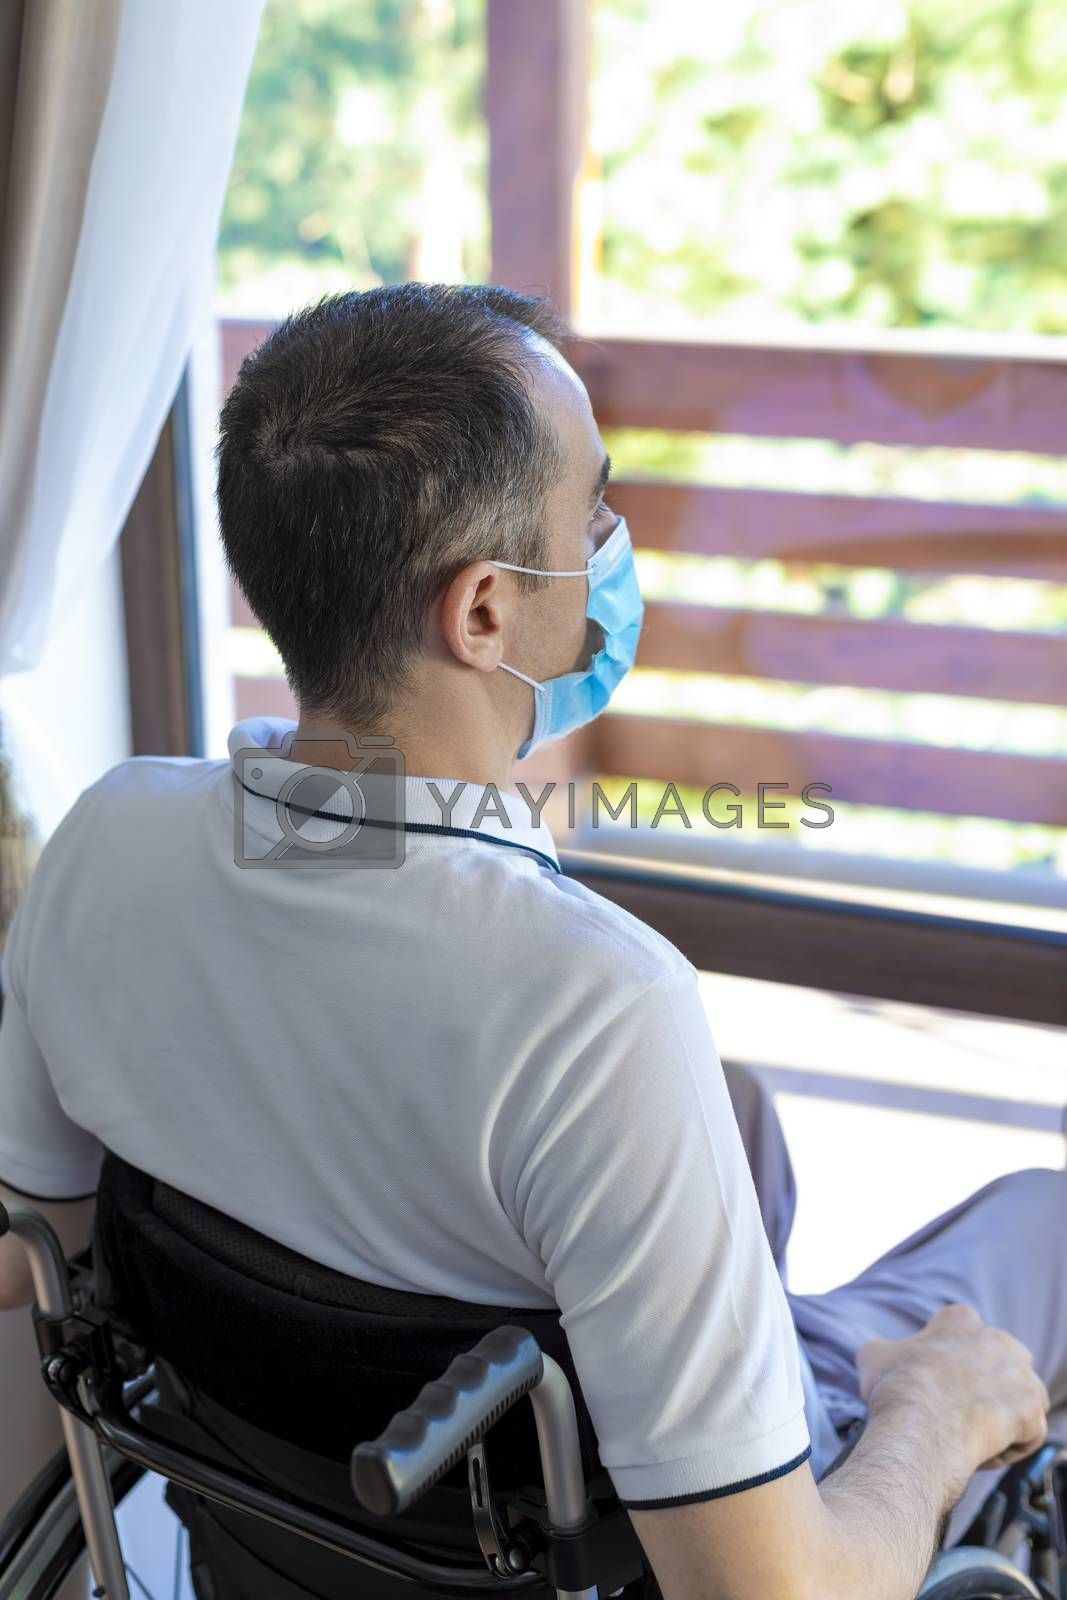 Lonely young man wearing face mask sitting in a wheelchair alone looking out the window. Focus on his head.